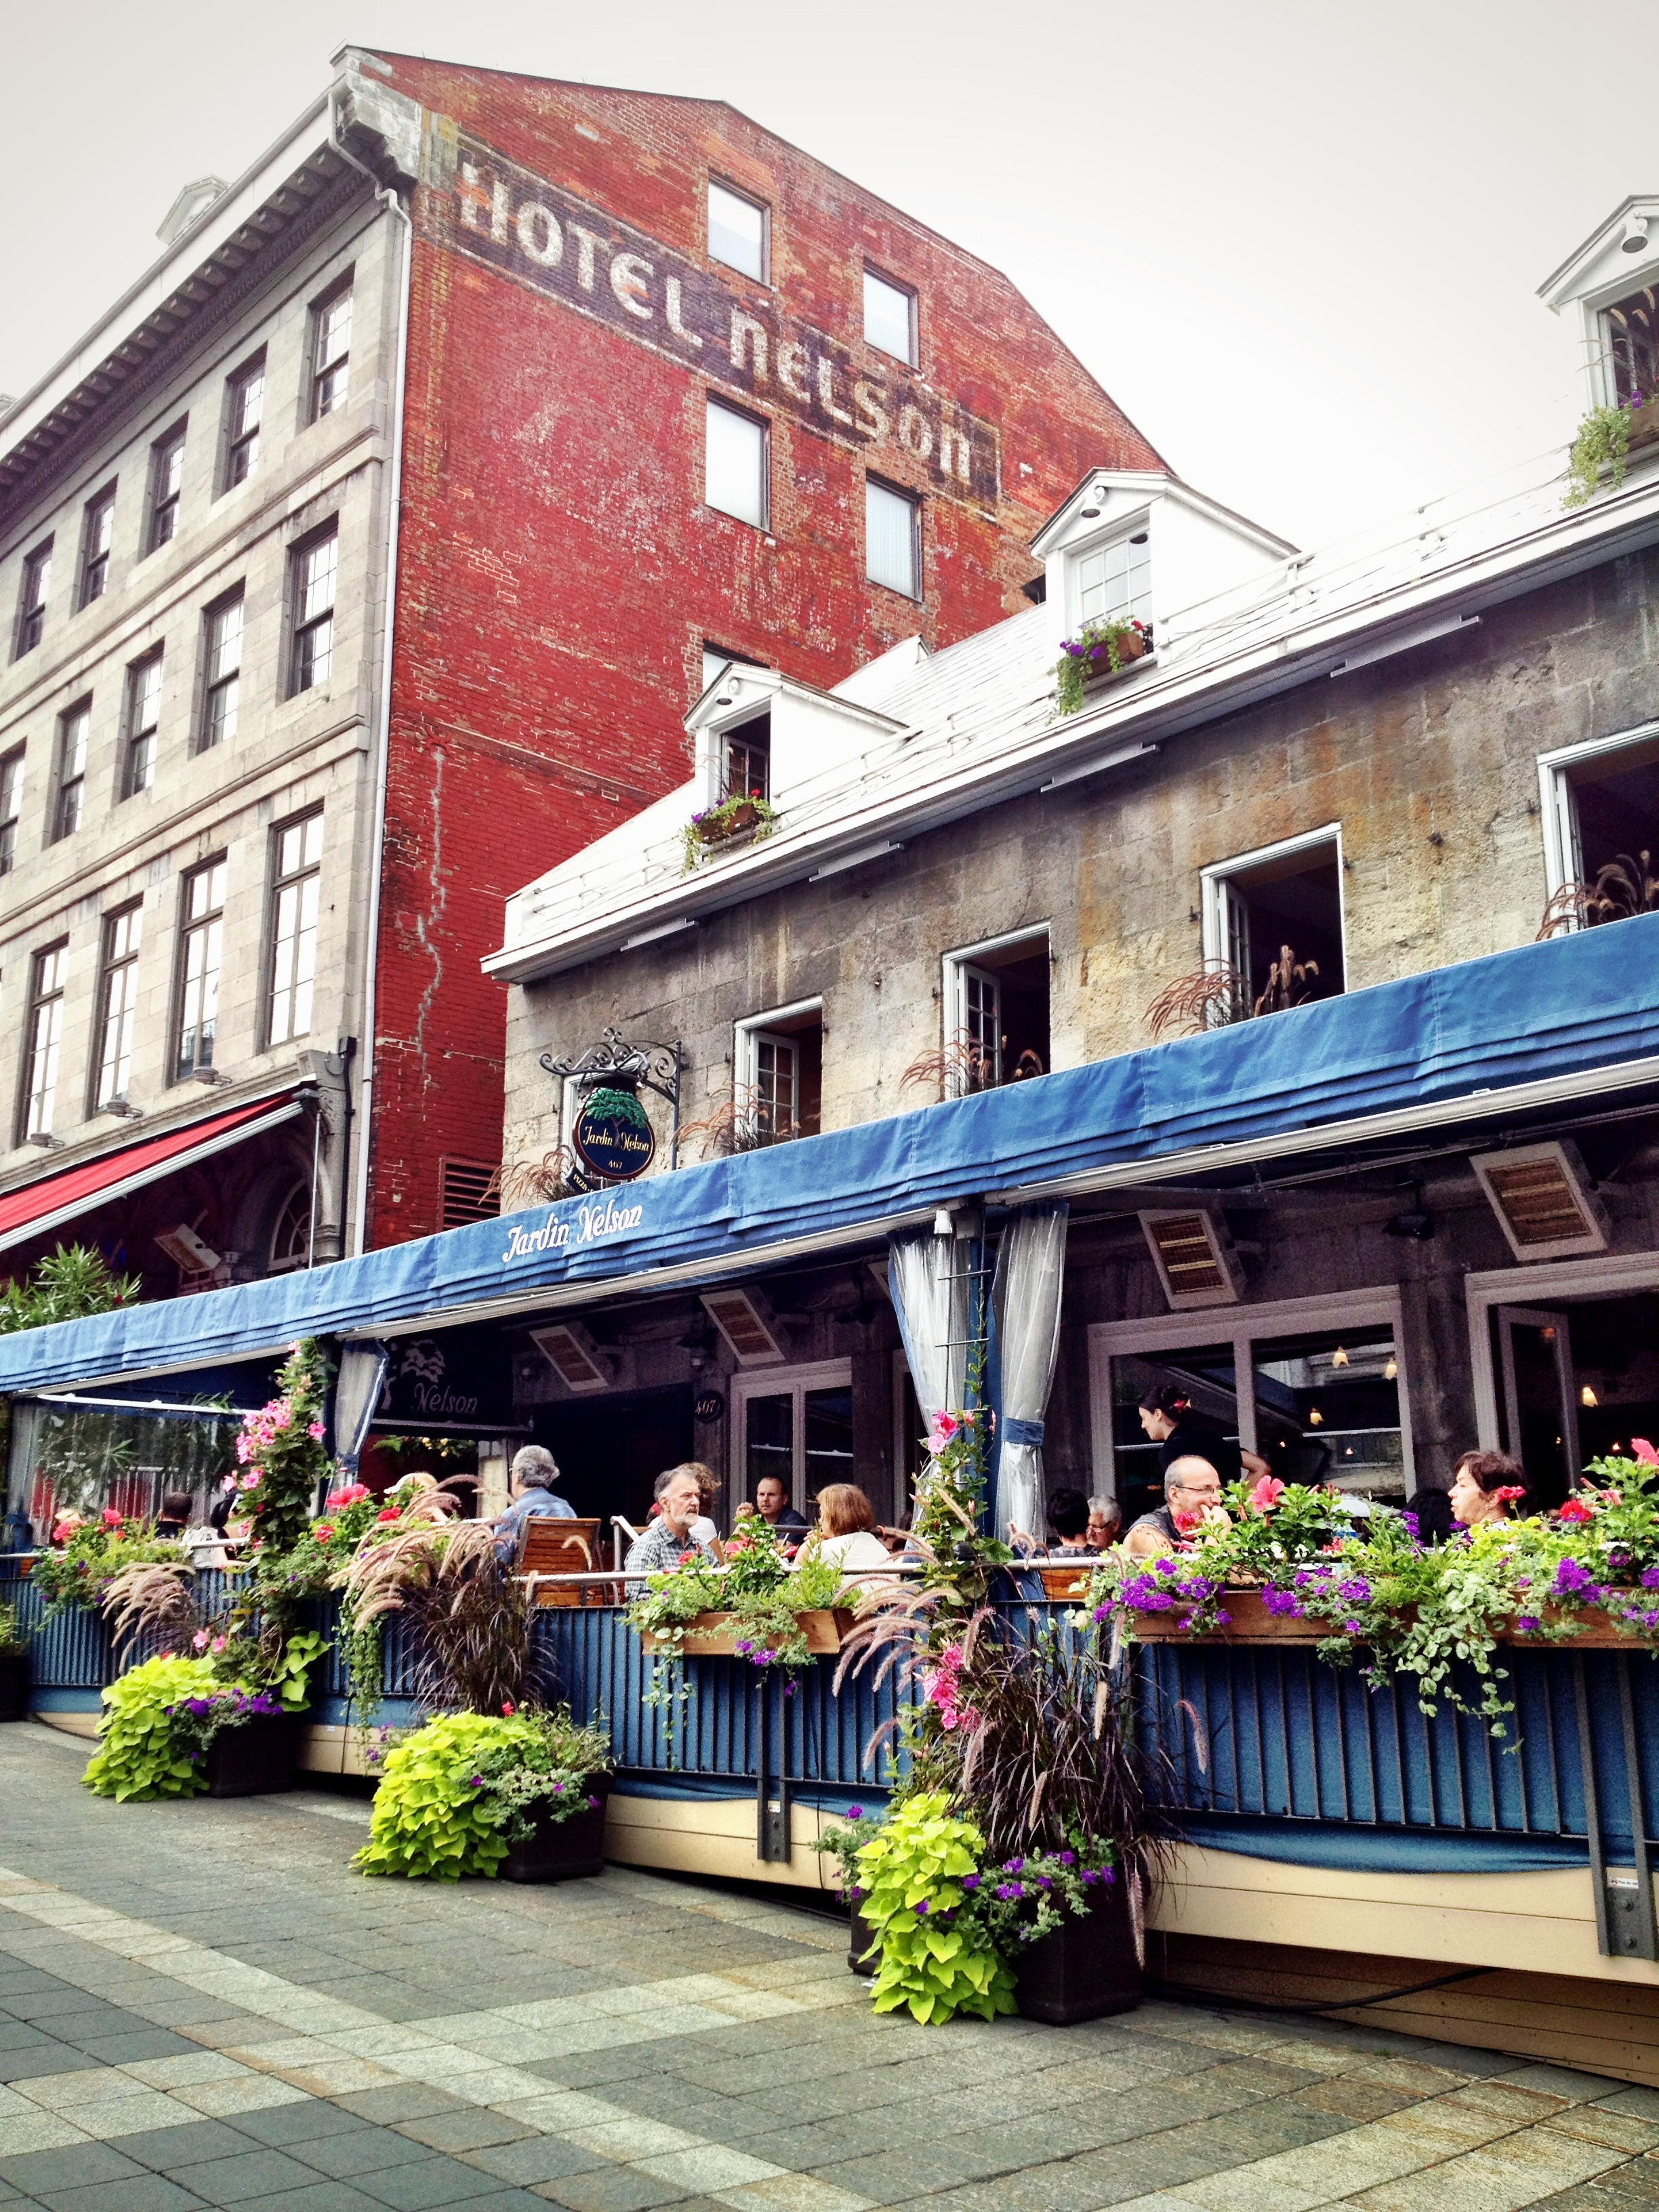 Jardin nelson in place jacques cartier cuteness in all for Jardin nelson montreal menu